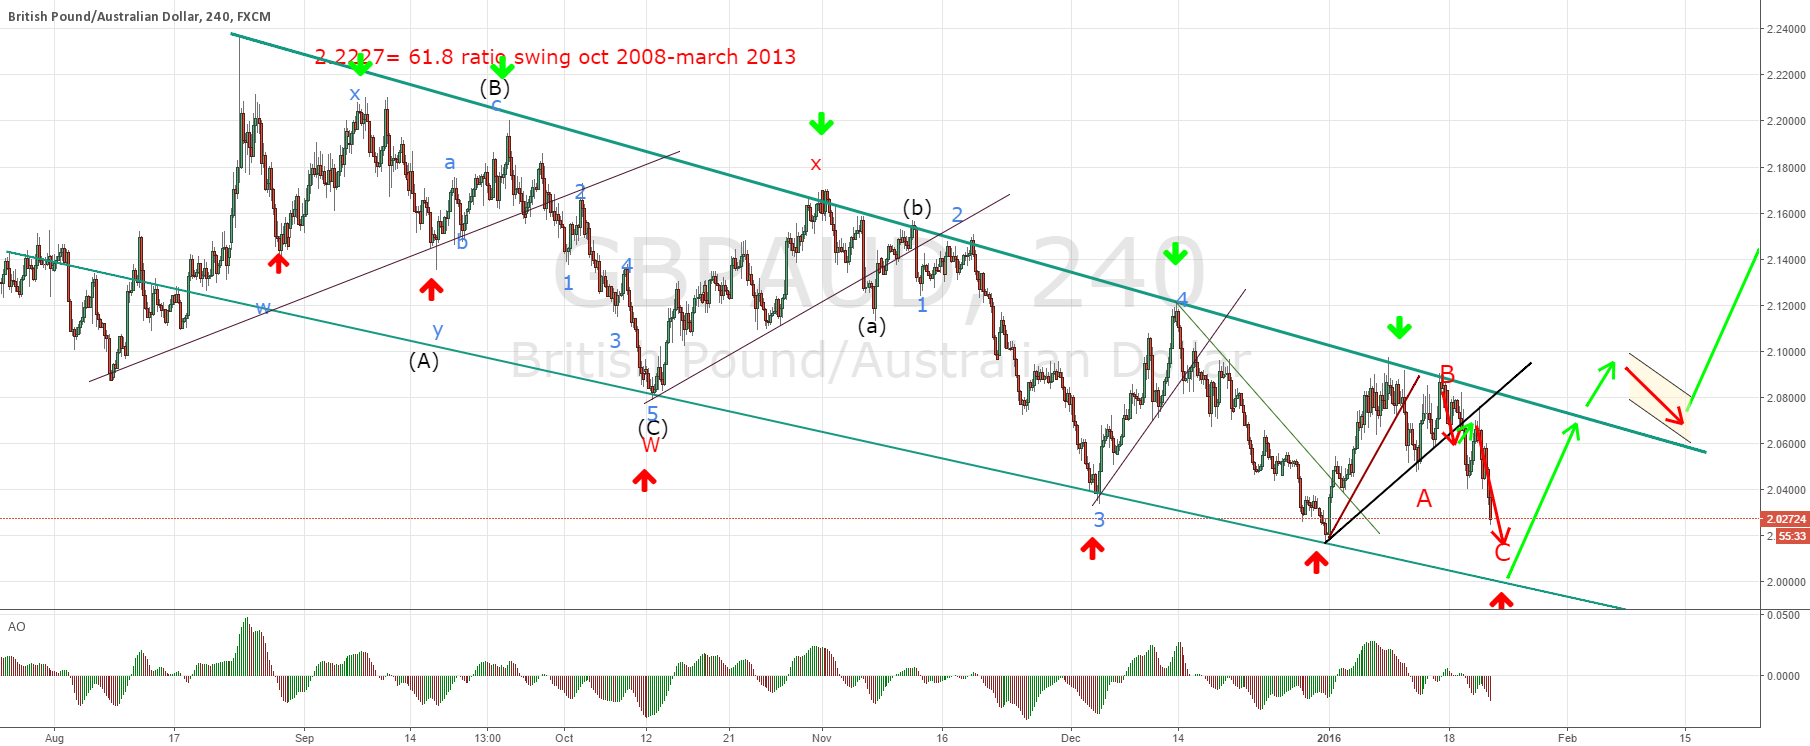 GBPAUD watch for that anticipated new low